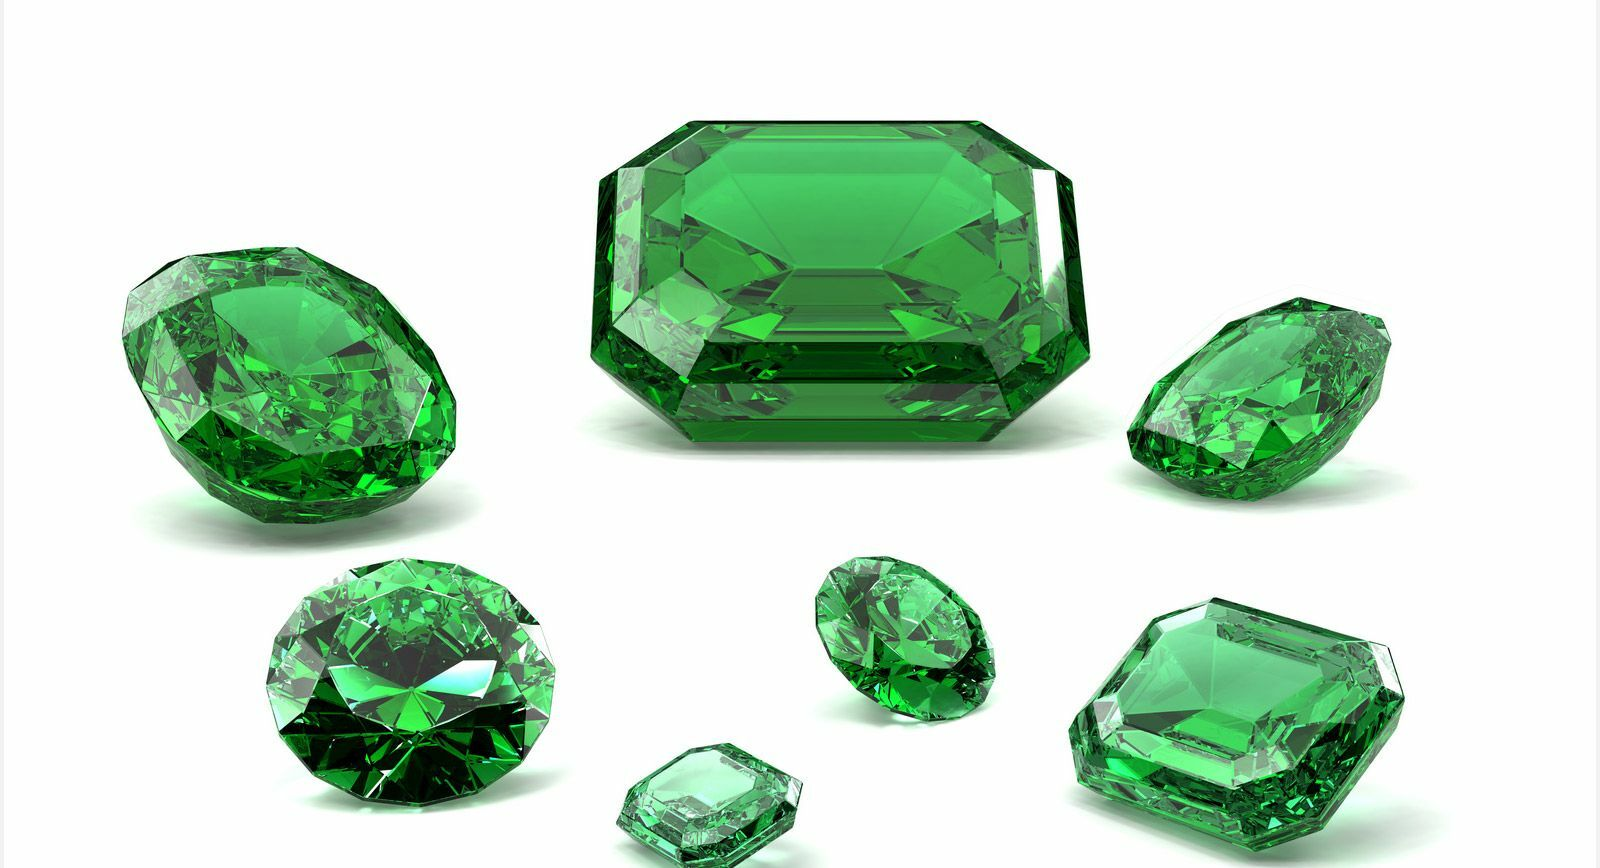 Emerald Jewellery Buying Guide: What To Look Out For